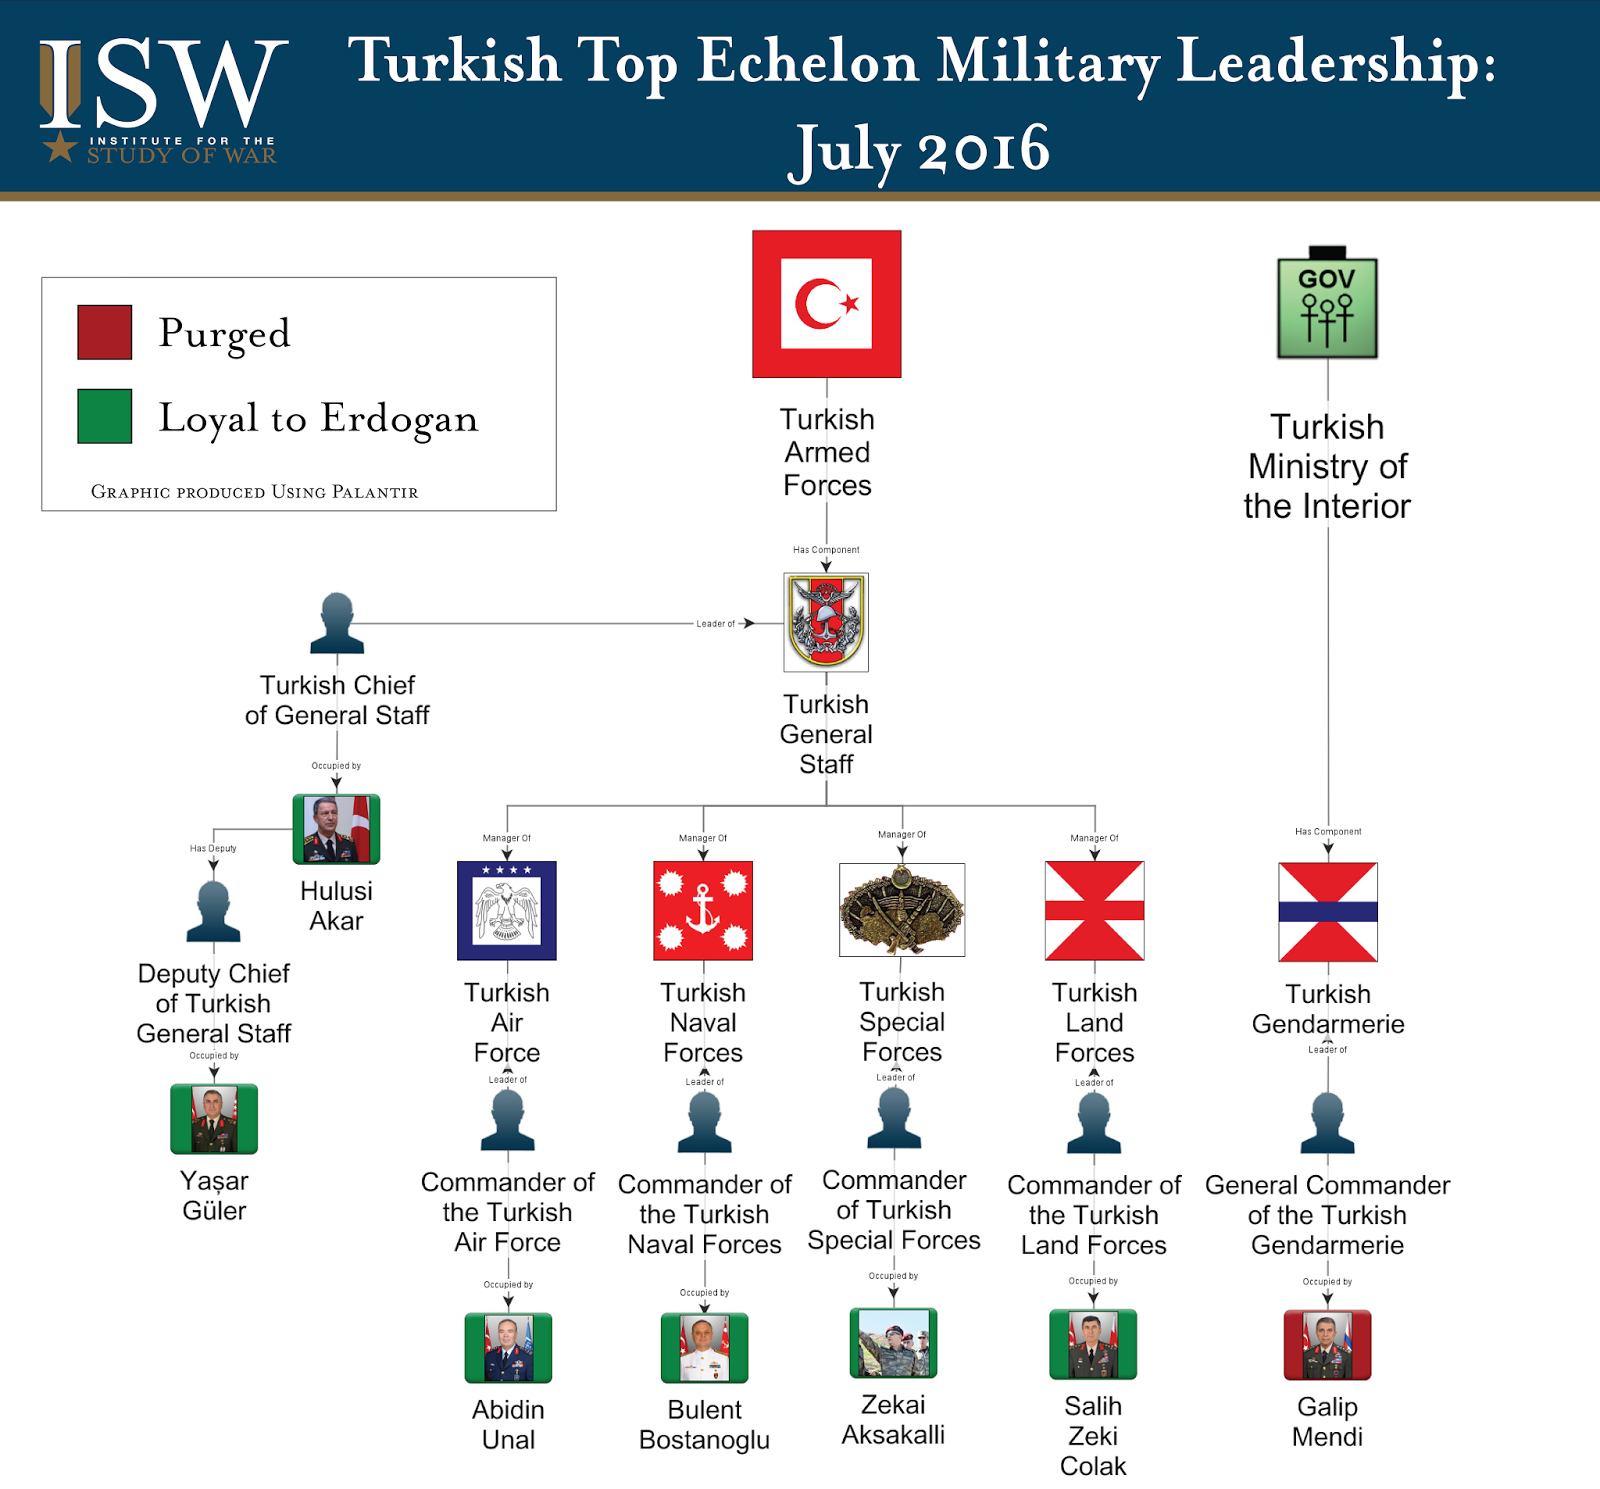 Formatted%2BTurkey%2BTop%2BEchelon%2BMilitary%2BLeadership%2BJuly%2B2016 01 isw blog partial assessment of turkey's post coup attempt military